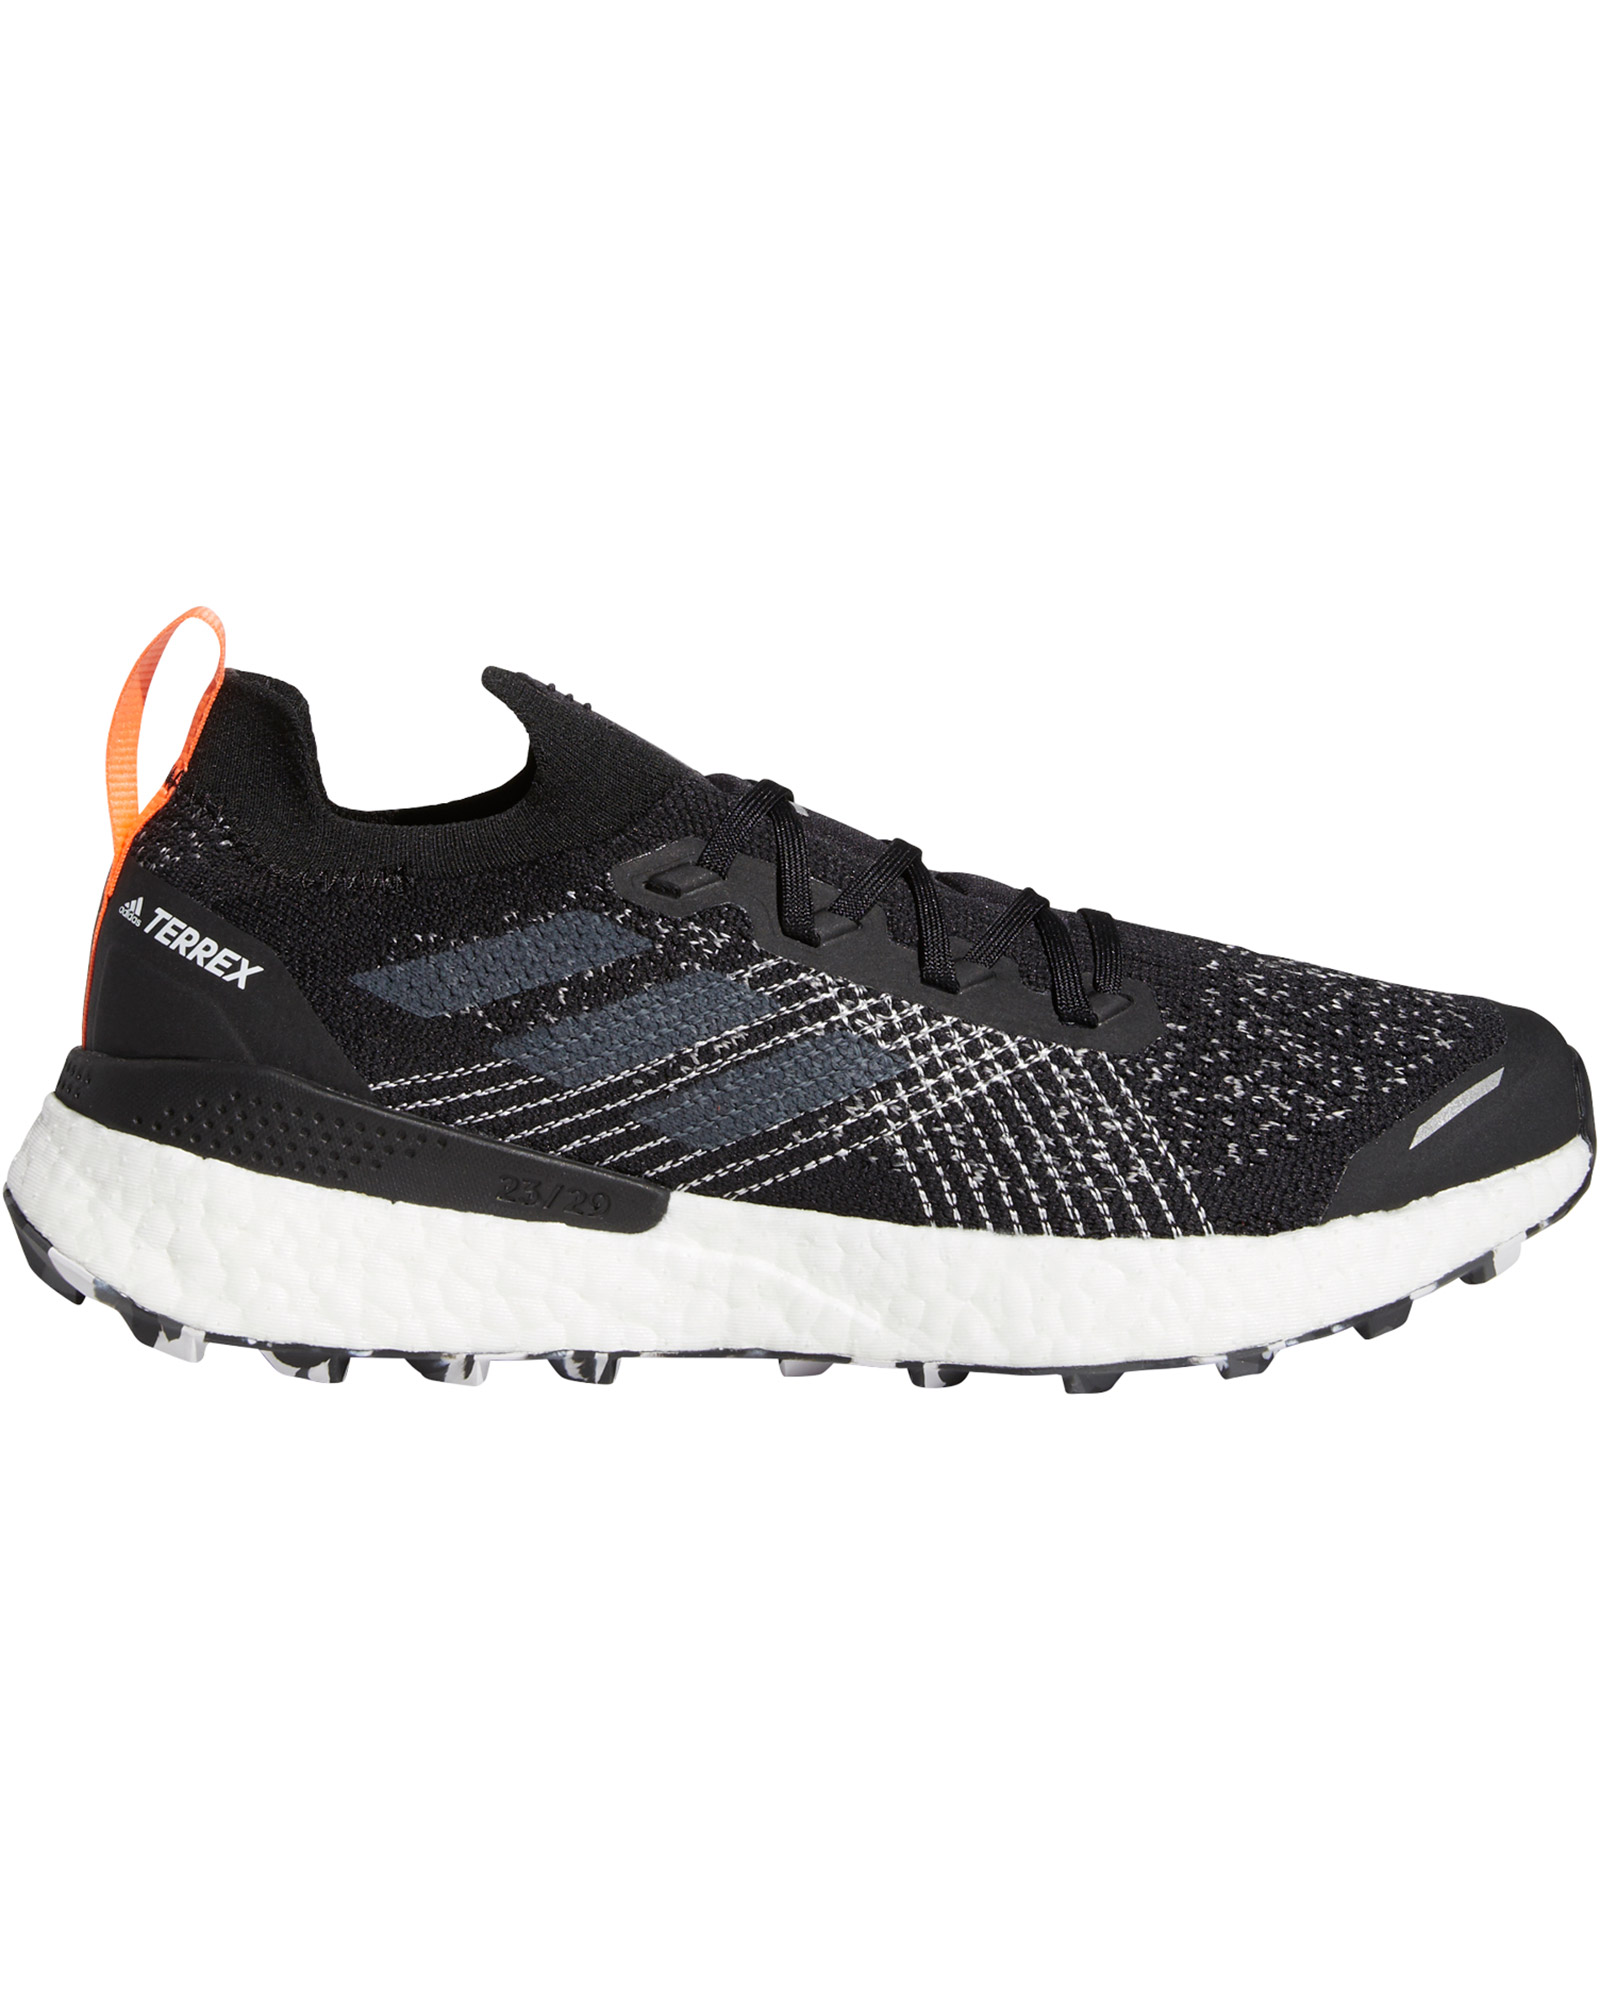 Adidas Terrex Men's Terrex TWO Ultra Parley Trail Running Shoes 0